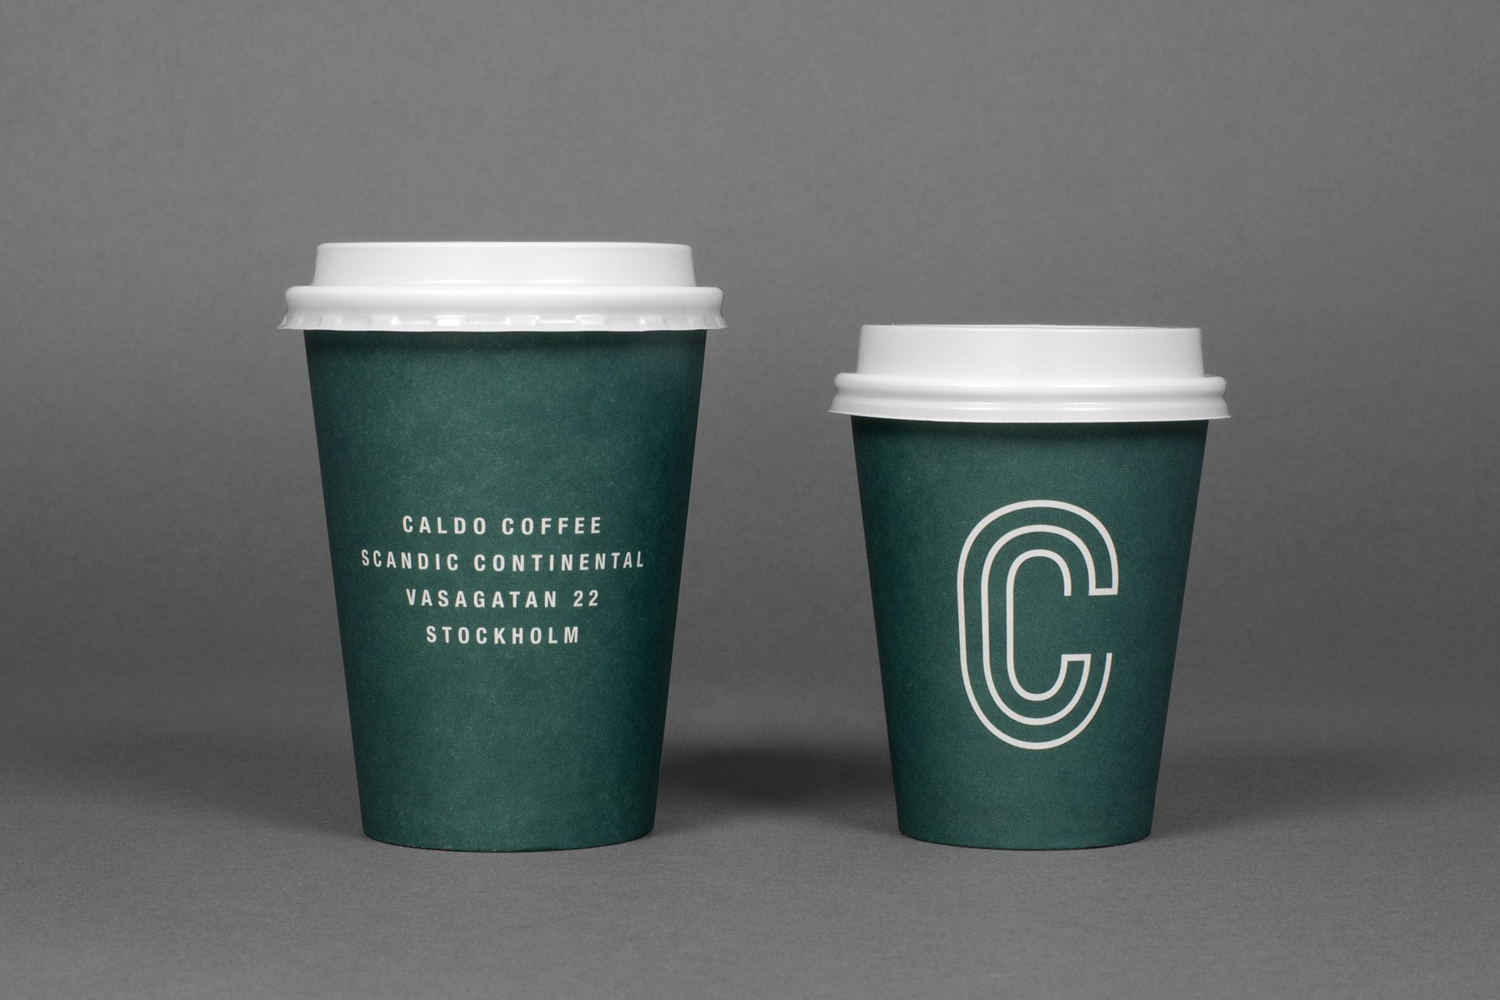 Cafe & Coffee Shop Branding – Caldo Coffee by 25ah, Sweden